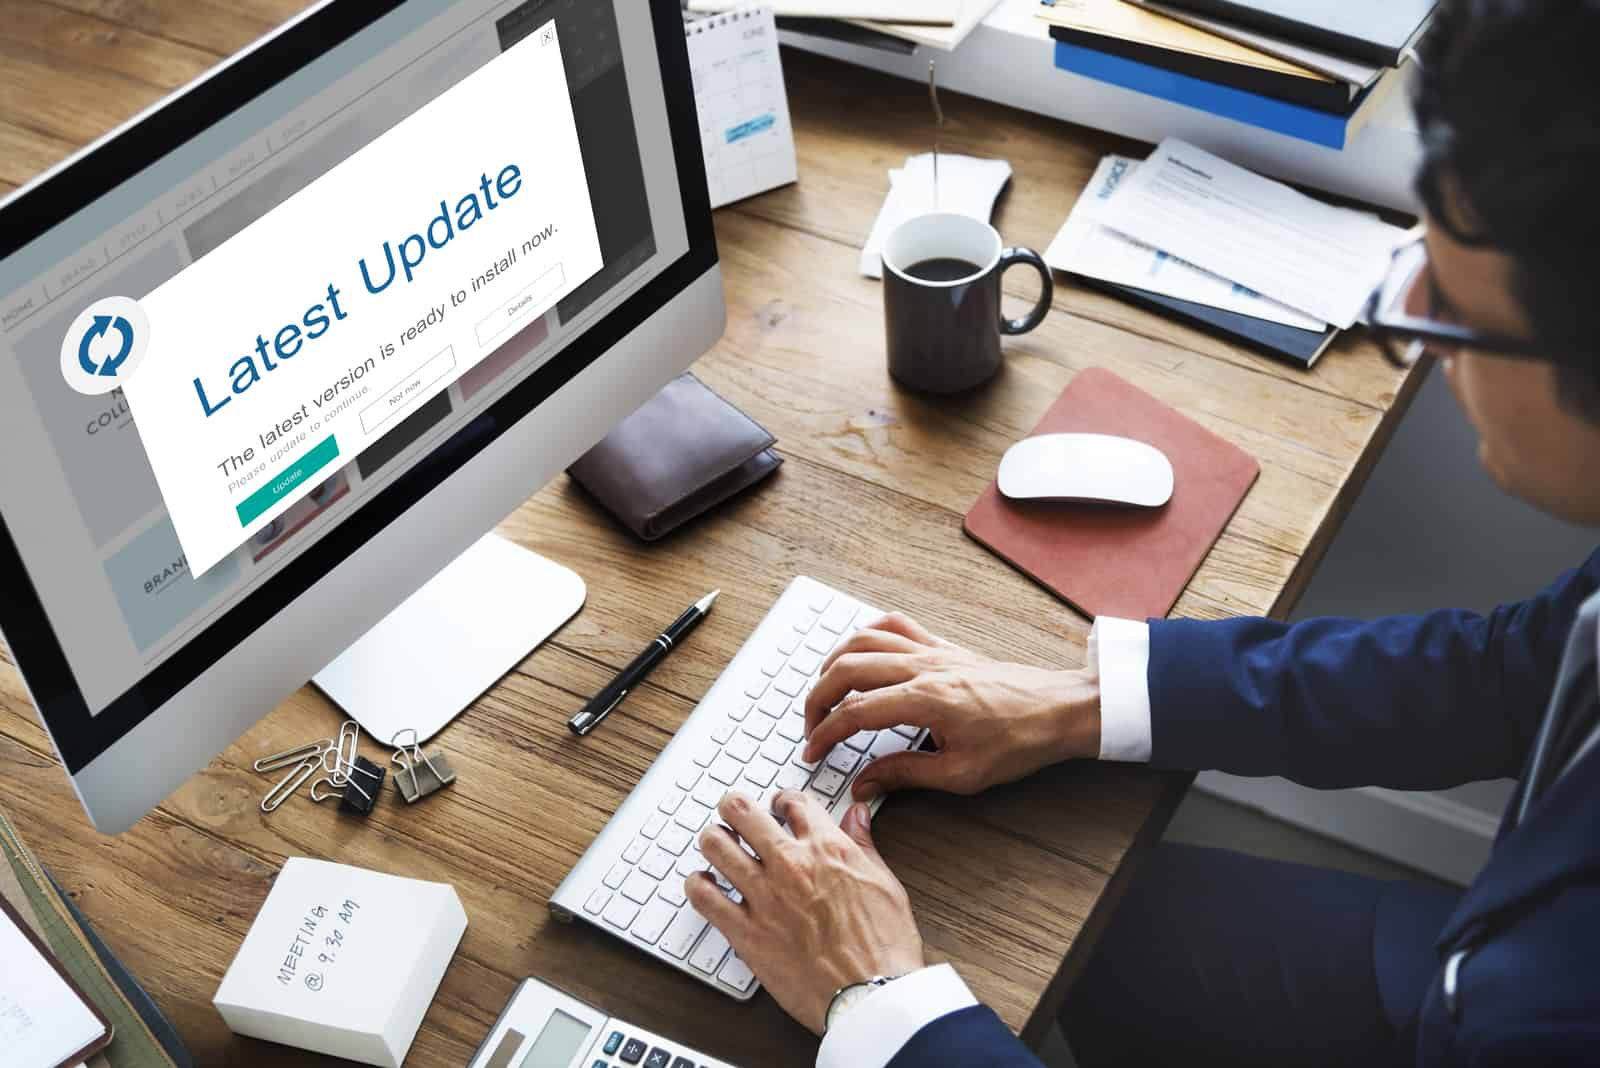 IT Support Birmingham Updates